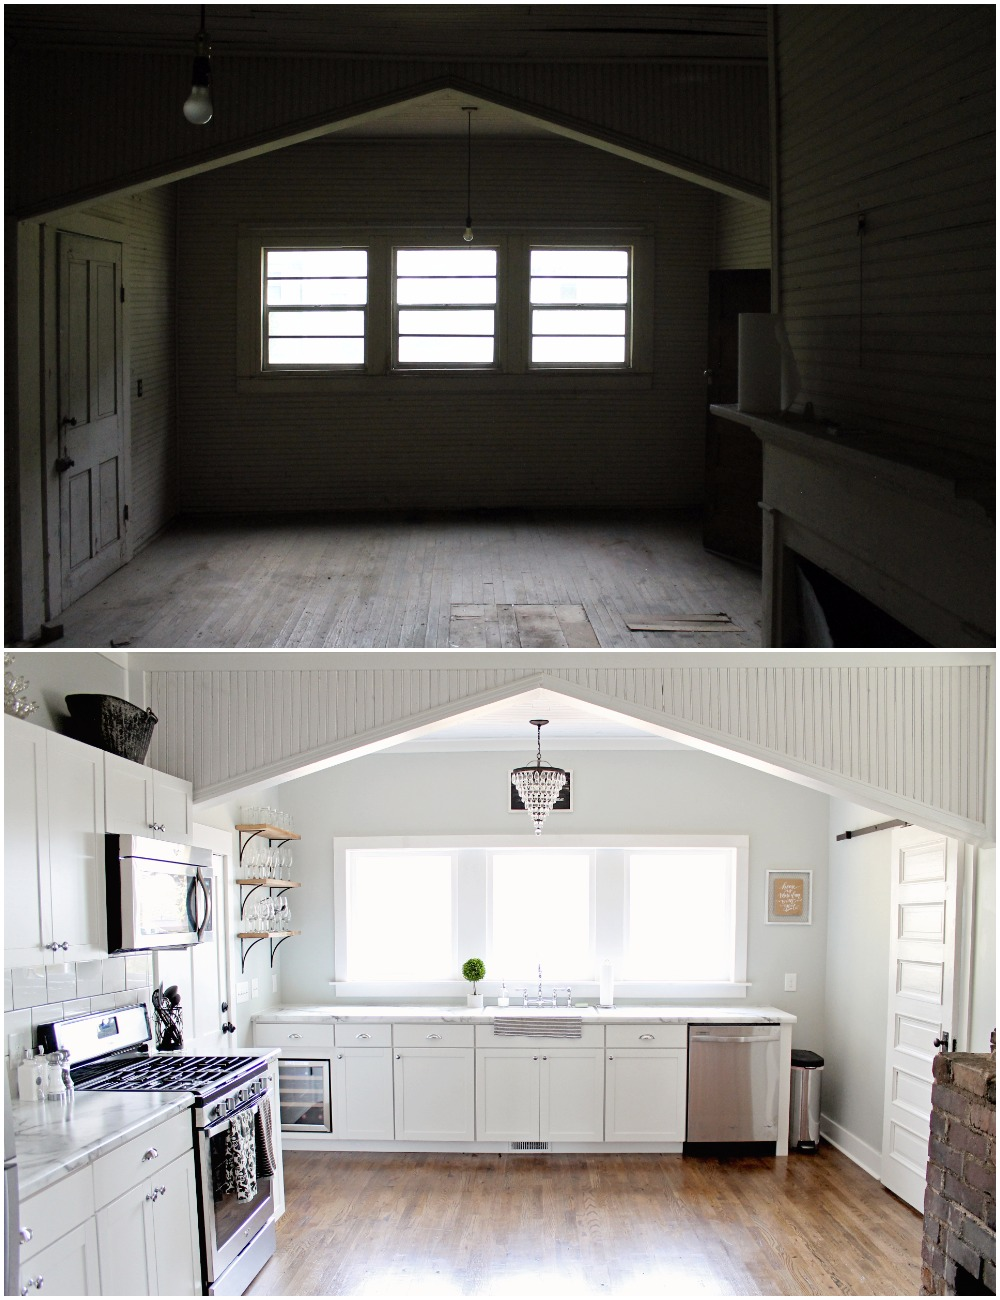 Our Farmhouse Inspired Kitchen for Under $5000 — Elizabeth Burns ...